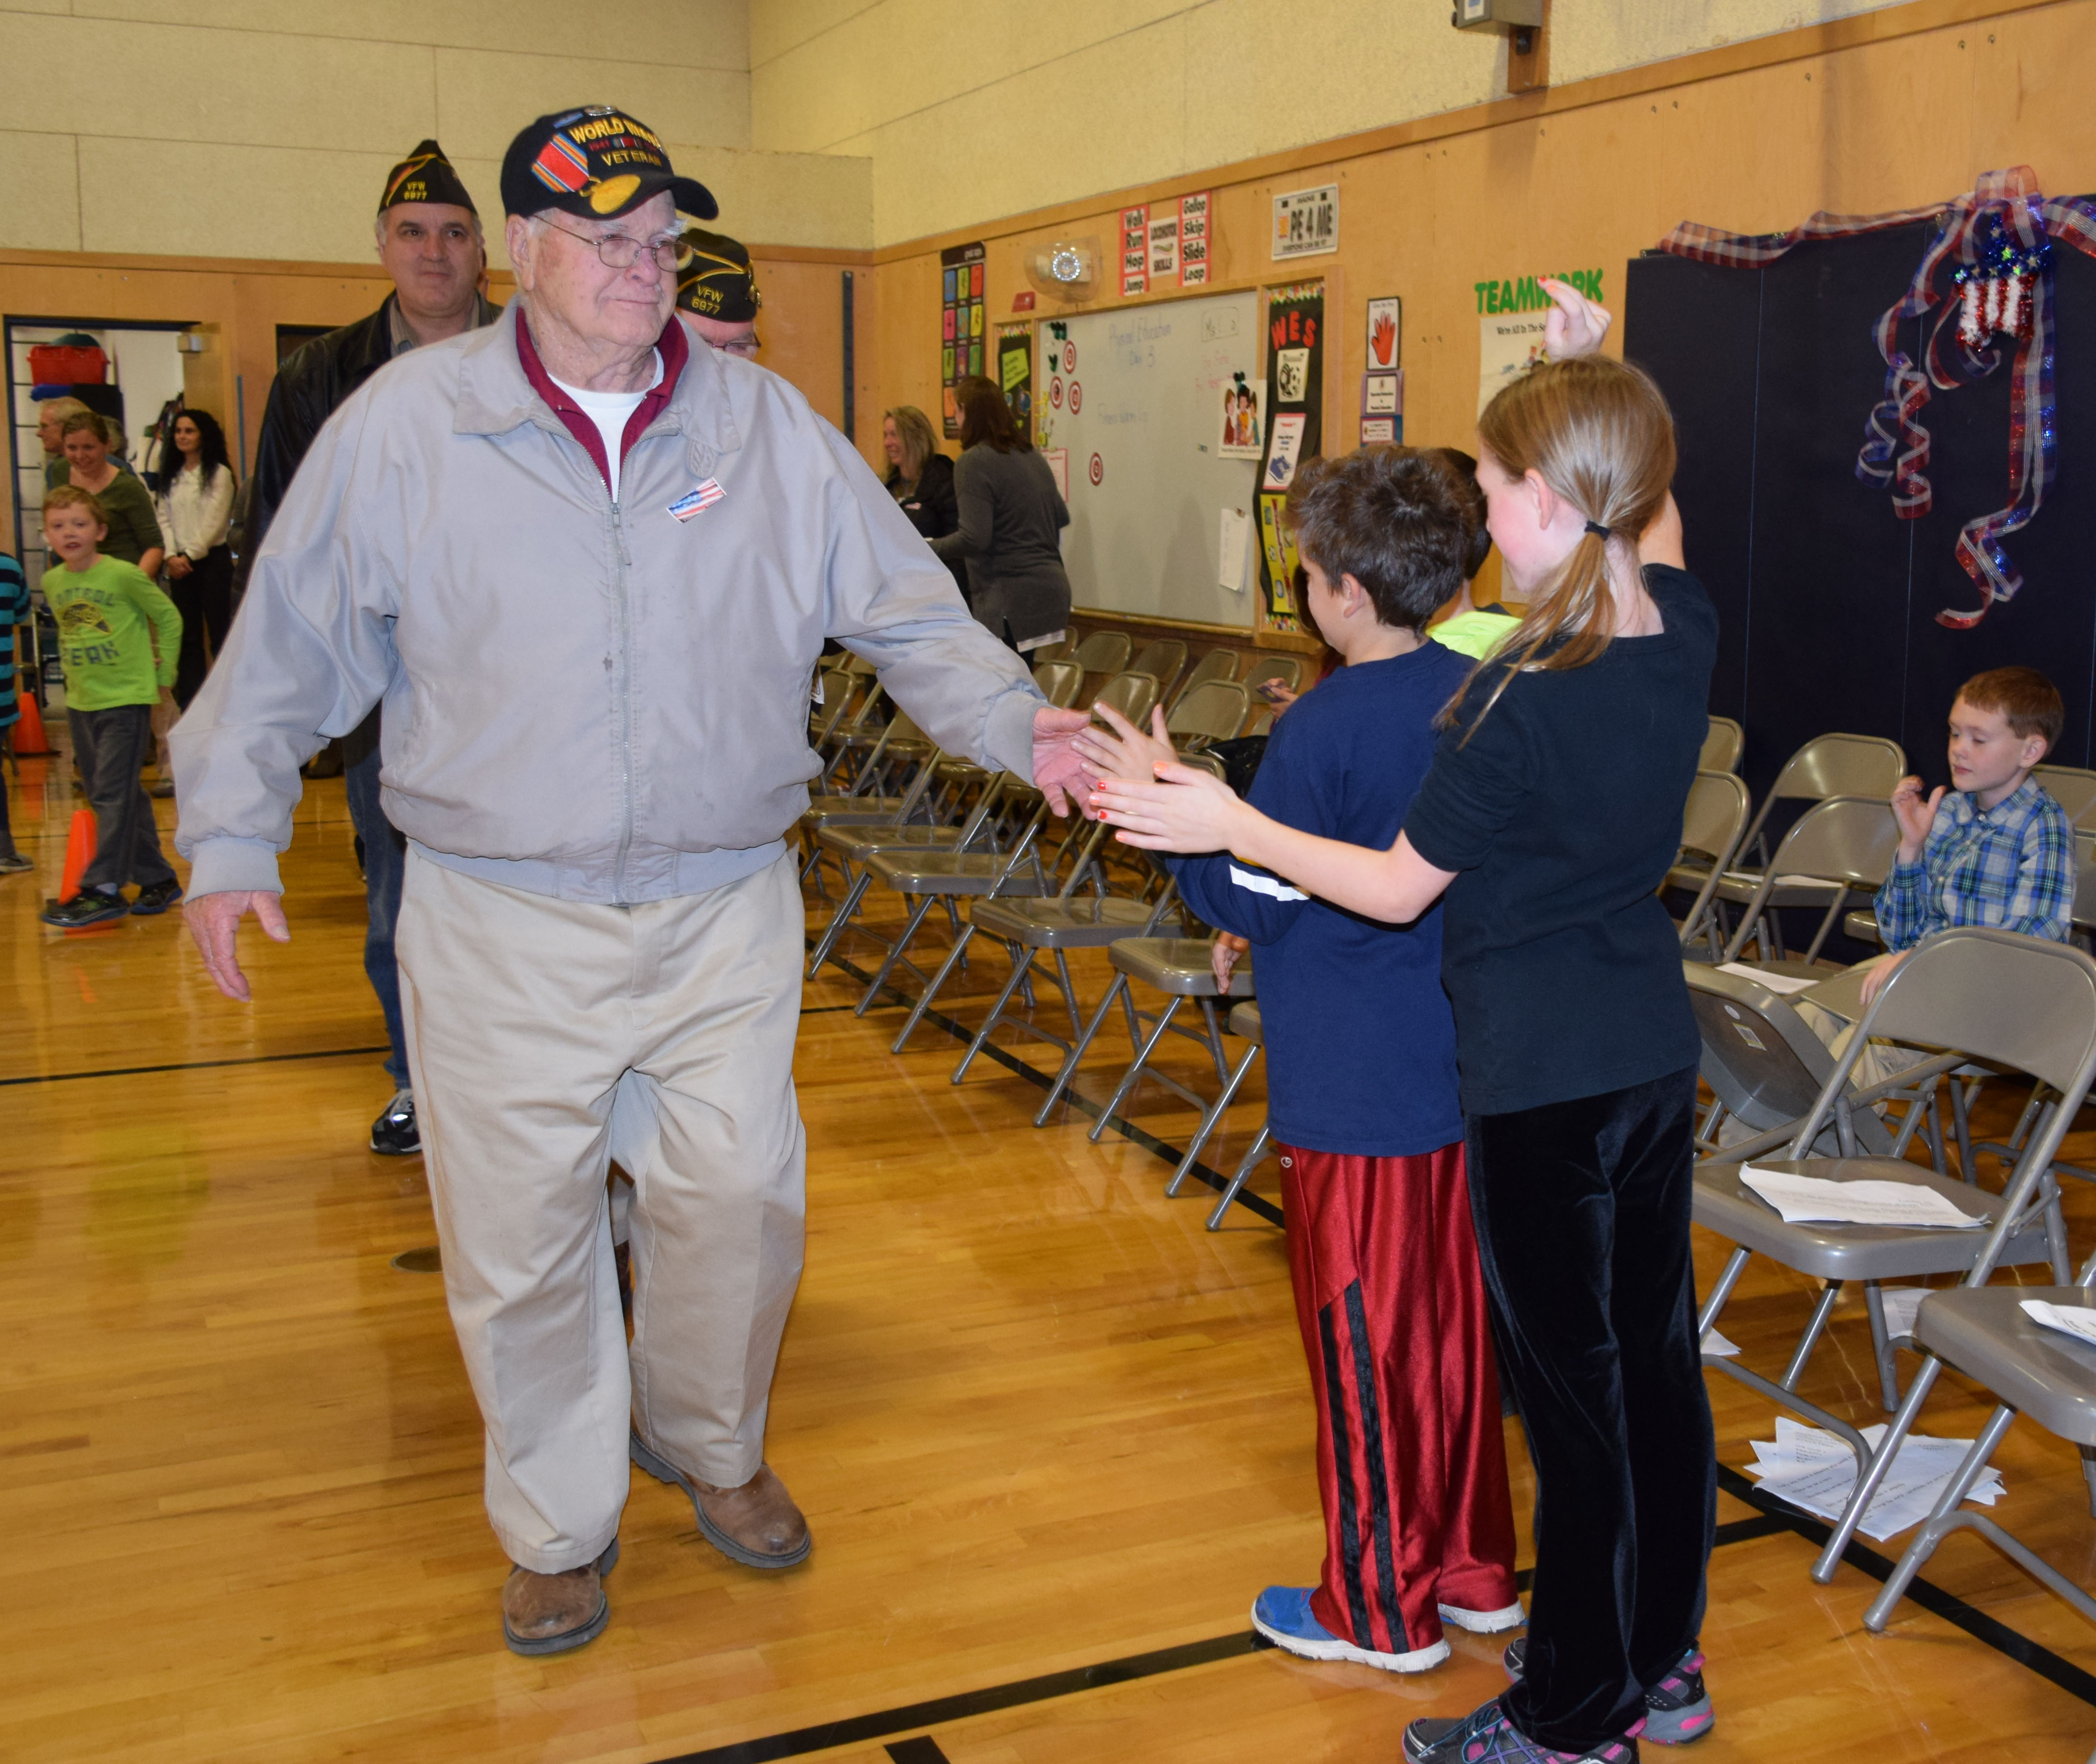 At the end of the Veterans Day assembly at Wells Elementary students lined up to shake hands with the guest veterans. World War II Veteran John Primerano greets students at the end of K-4 assembly Nov. 10. Behind Primerano is Roger LaPlante, a U.S. Air Force veteran.